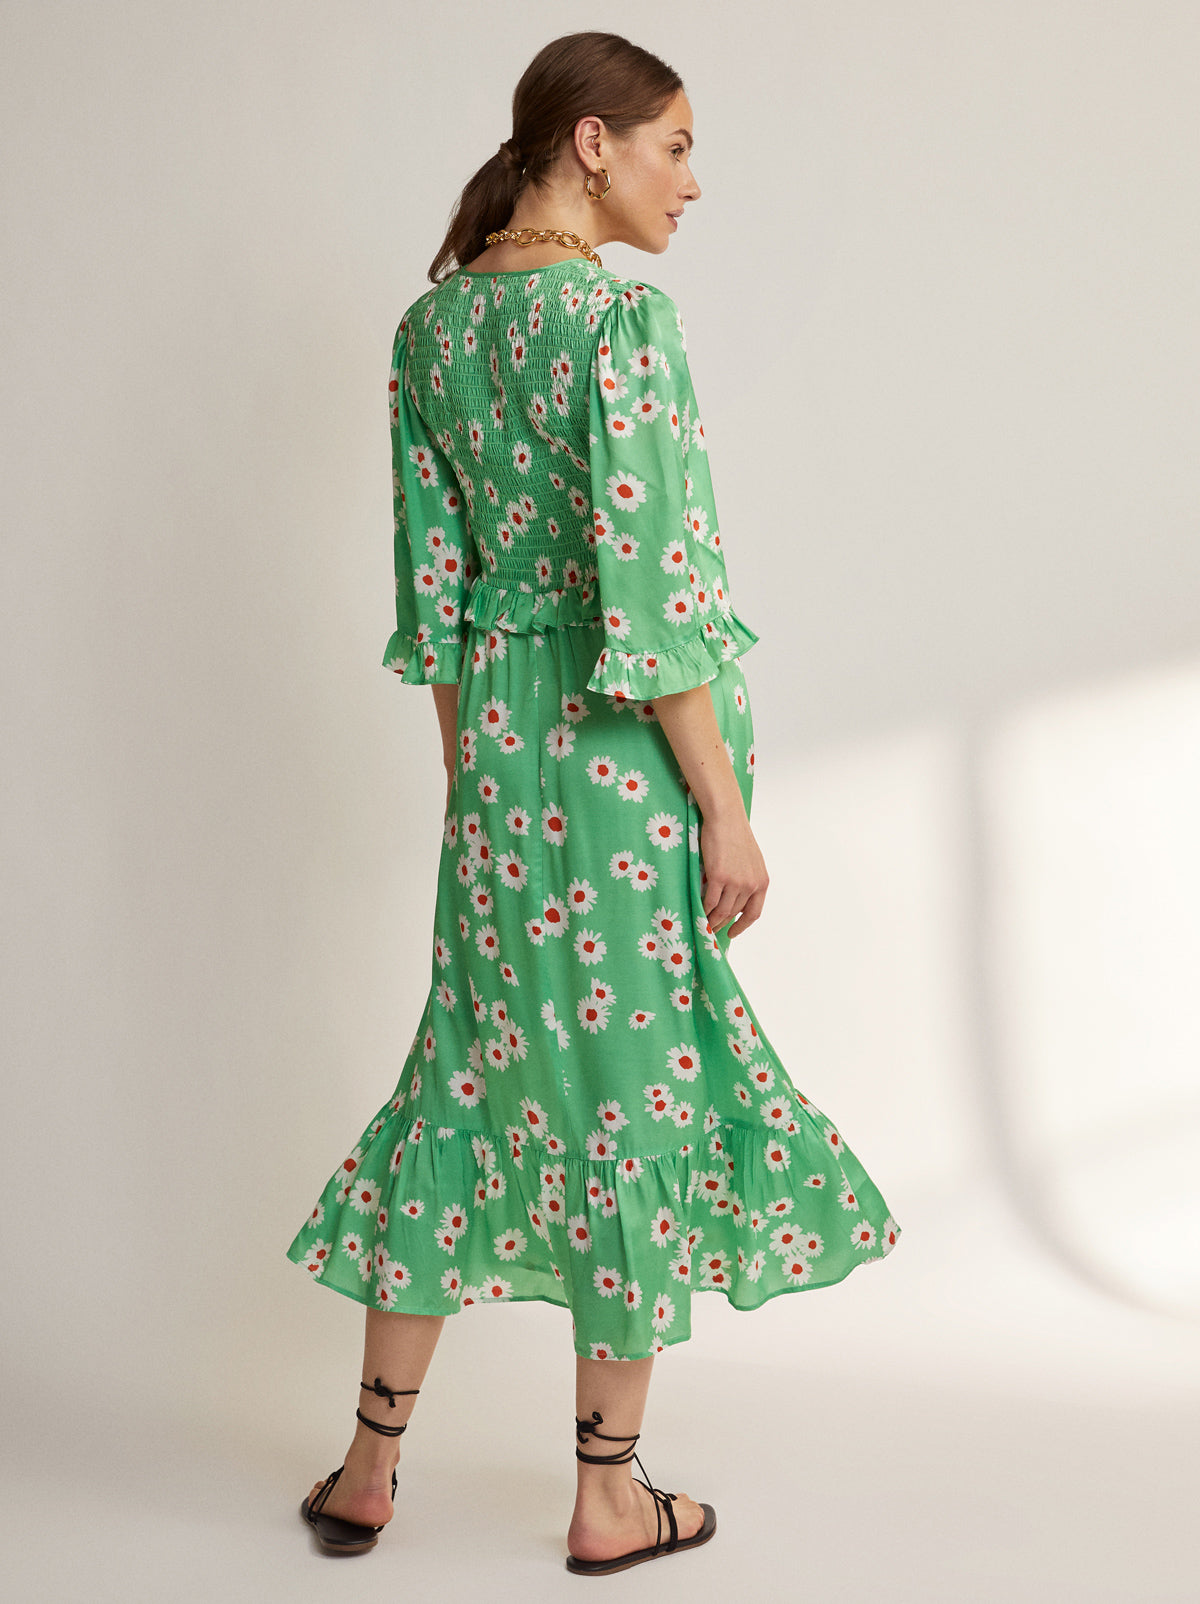 Savannah Green Daisy Shirred Dress by KITRI Studio